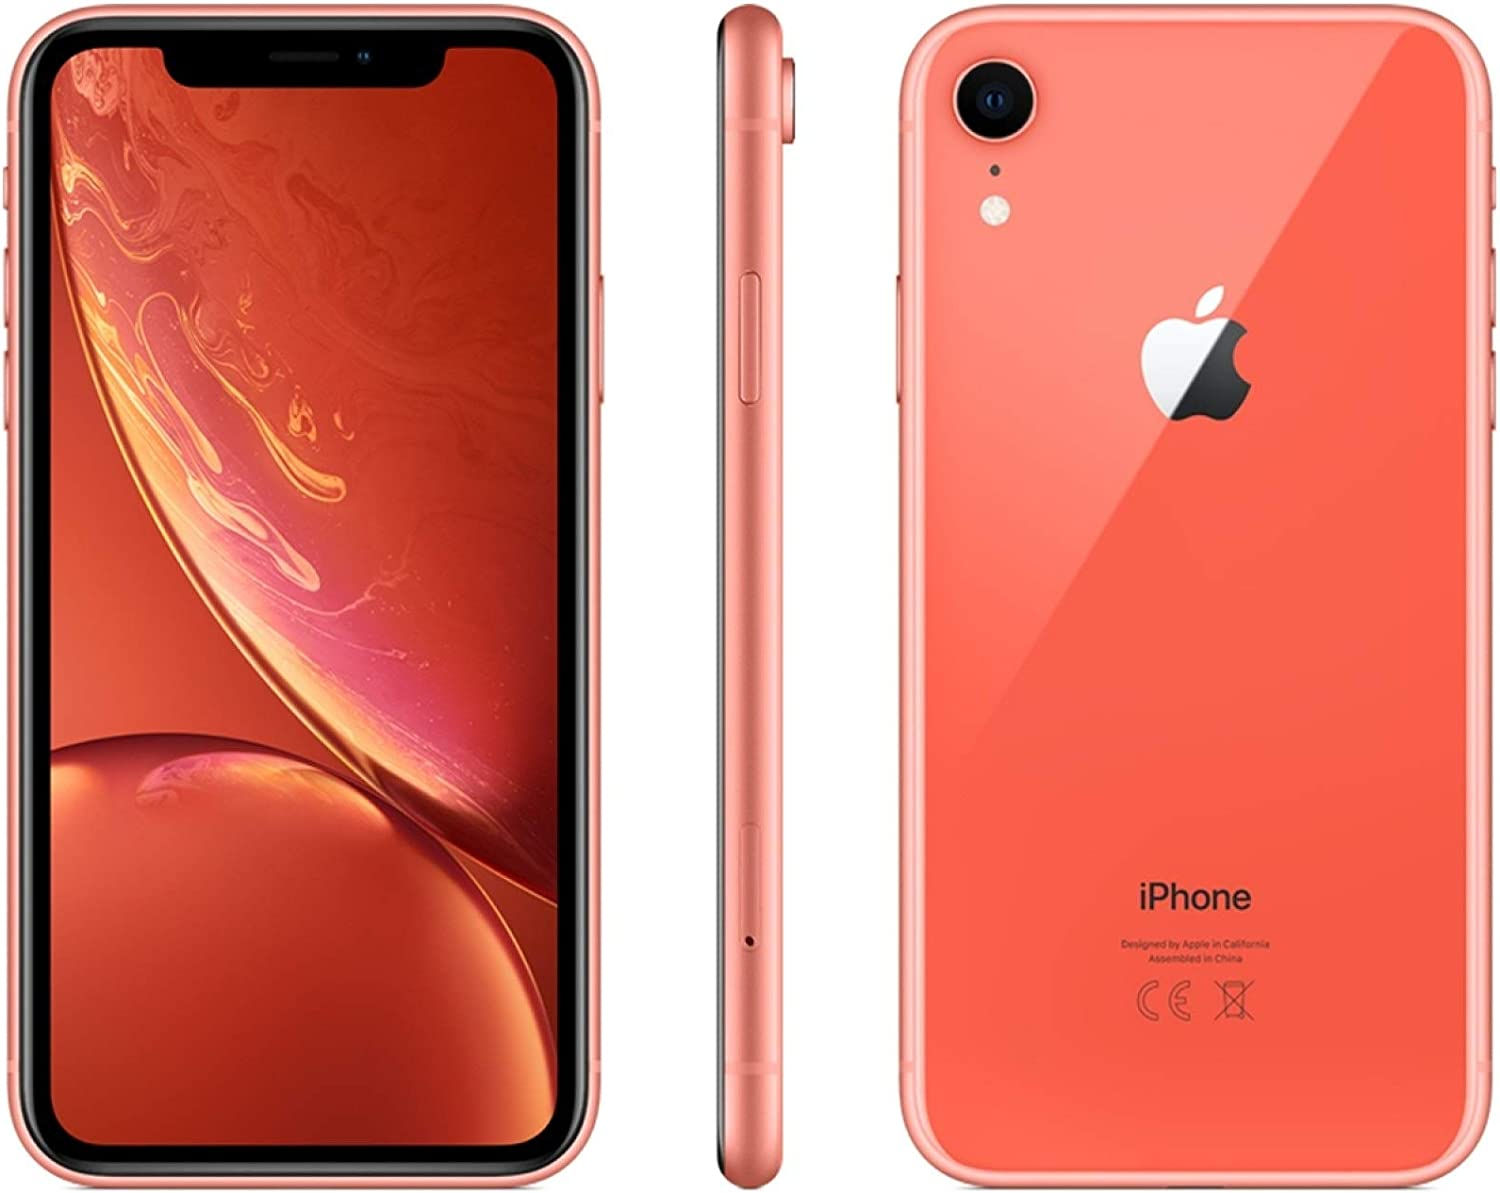 Apple iPhone XR, Sprint, 64GB - Coral (Renewed)